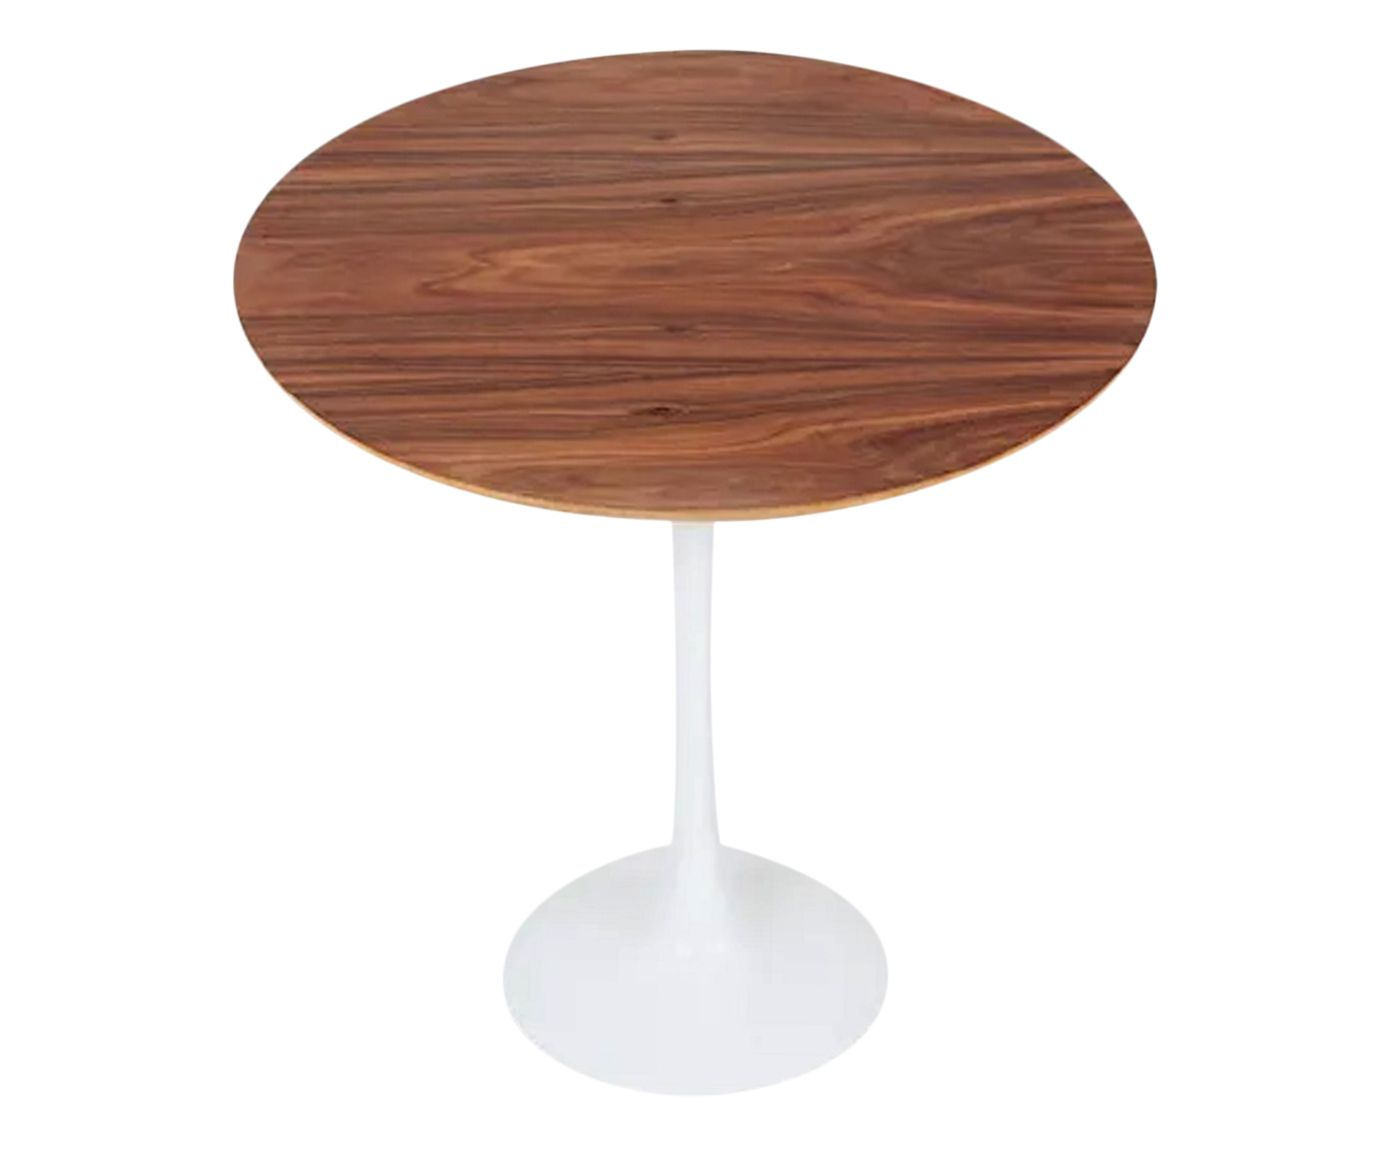 Mesa Lateral Tulipa Imbuia Round Branca - 51X52cm | Westwing.com.br